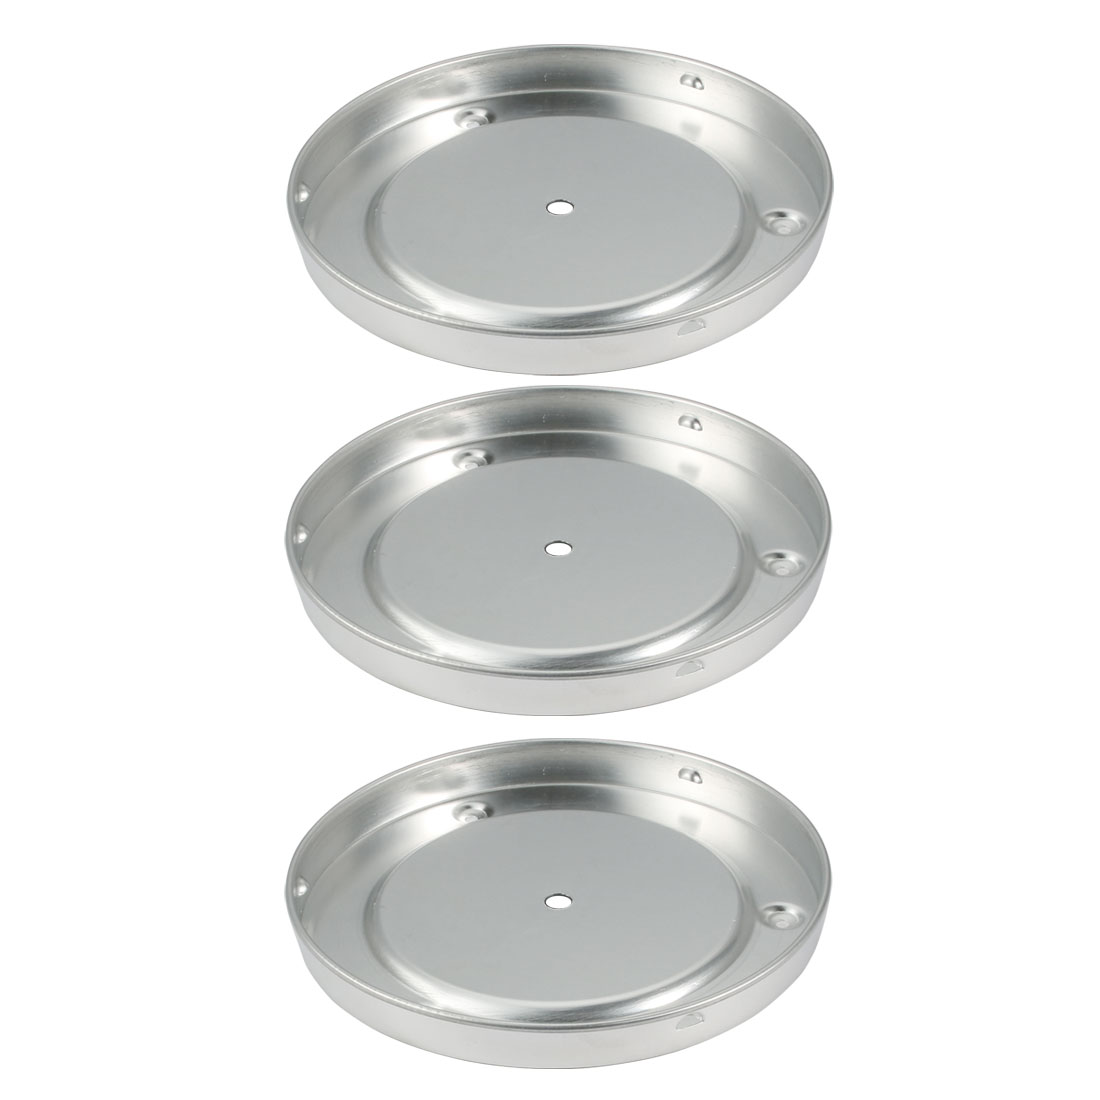 3pcs Aluminum Sink Mount Ceiling Light Lamp Chassis Fitting for 190mm Dia